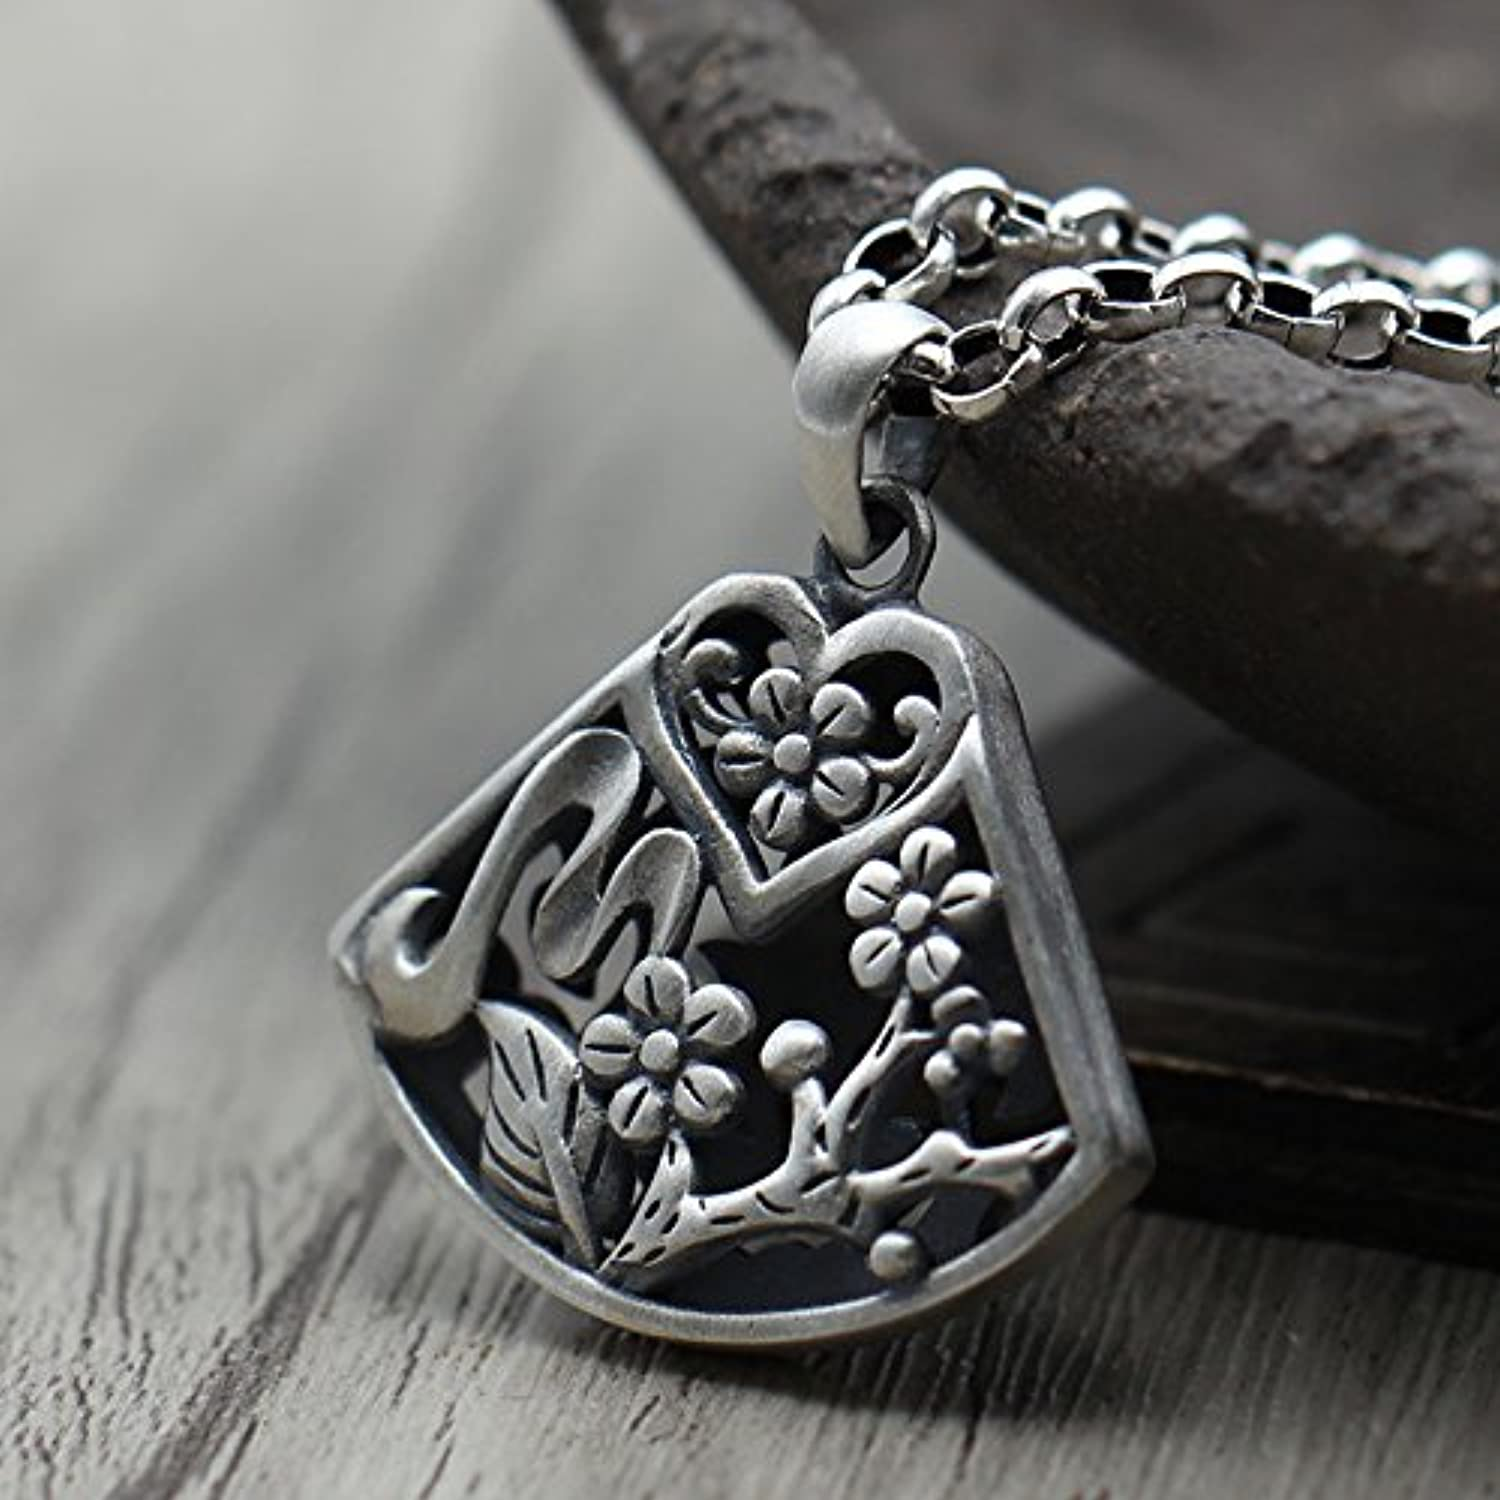 Ms Jewelry Retro Thai Silver Necklace Pendant Hollow Plum do Old Lotus Lotus Leaf Necklace Pendant S925 Silver